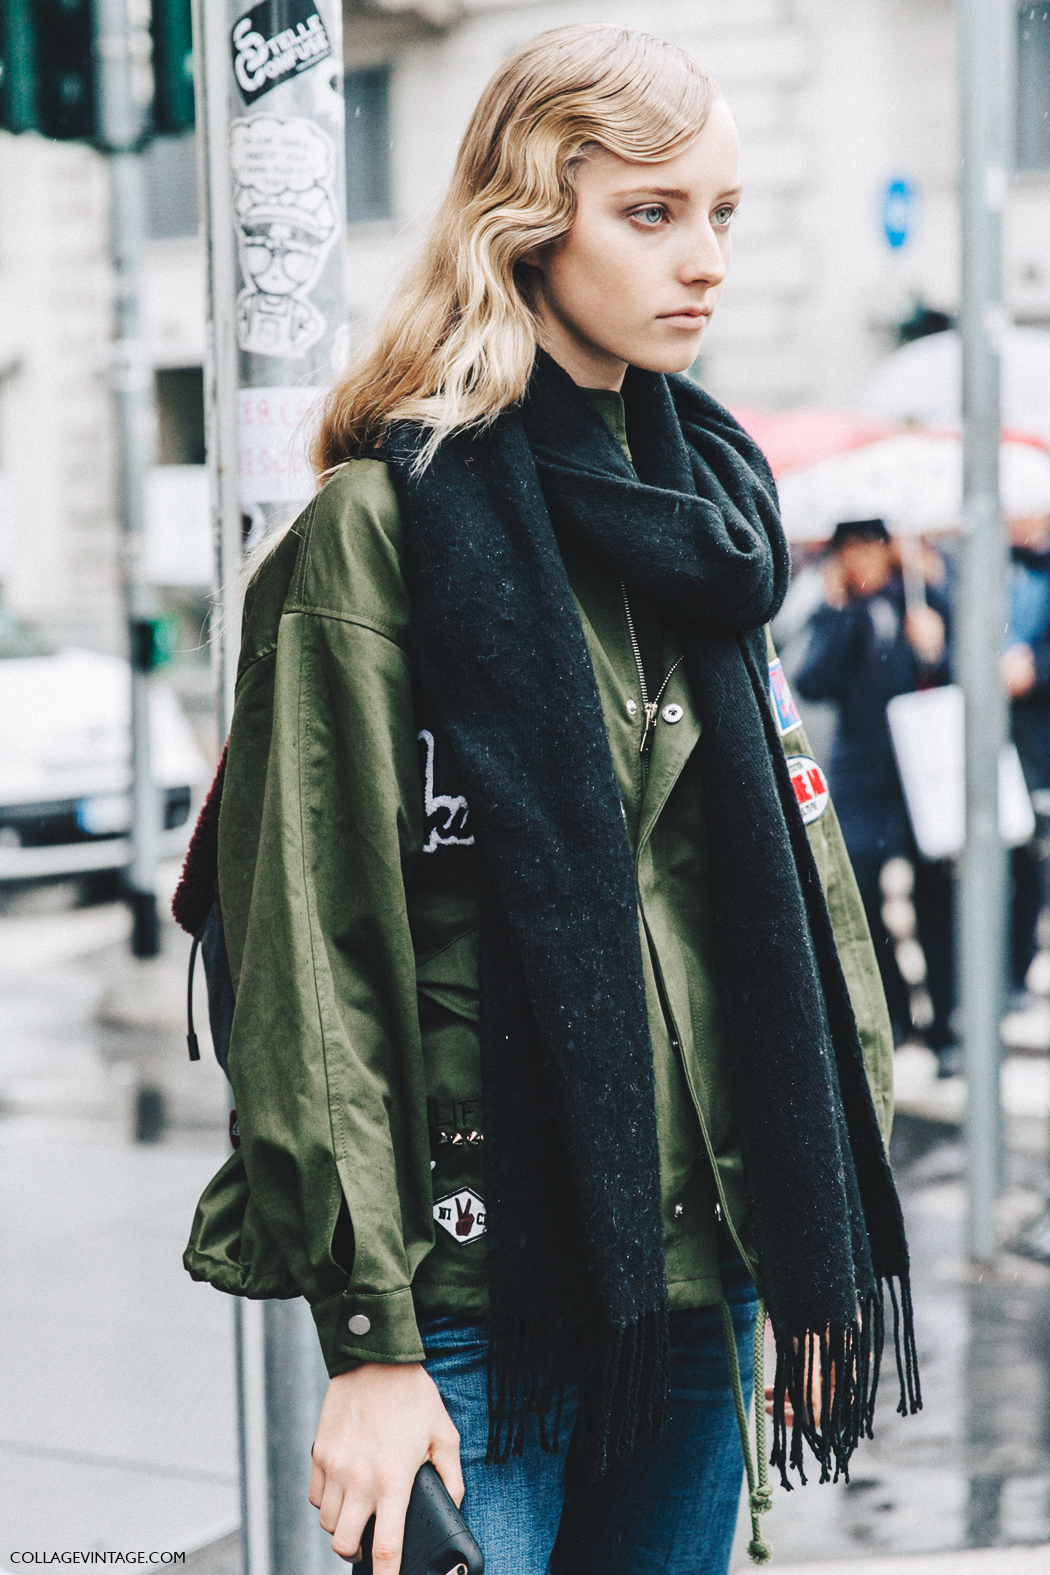 Milan_Fashion_Week_Fall_16-MFW-Street_Style-Collage_Vintage-Model_Parka-Backpack-1